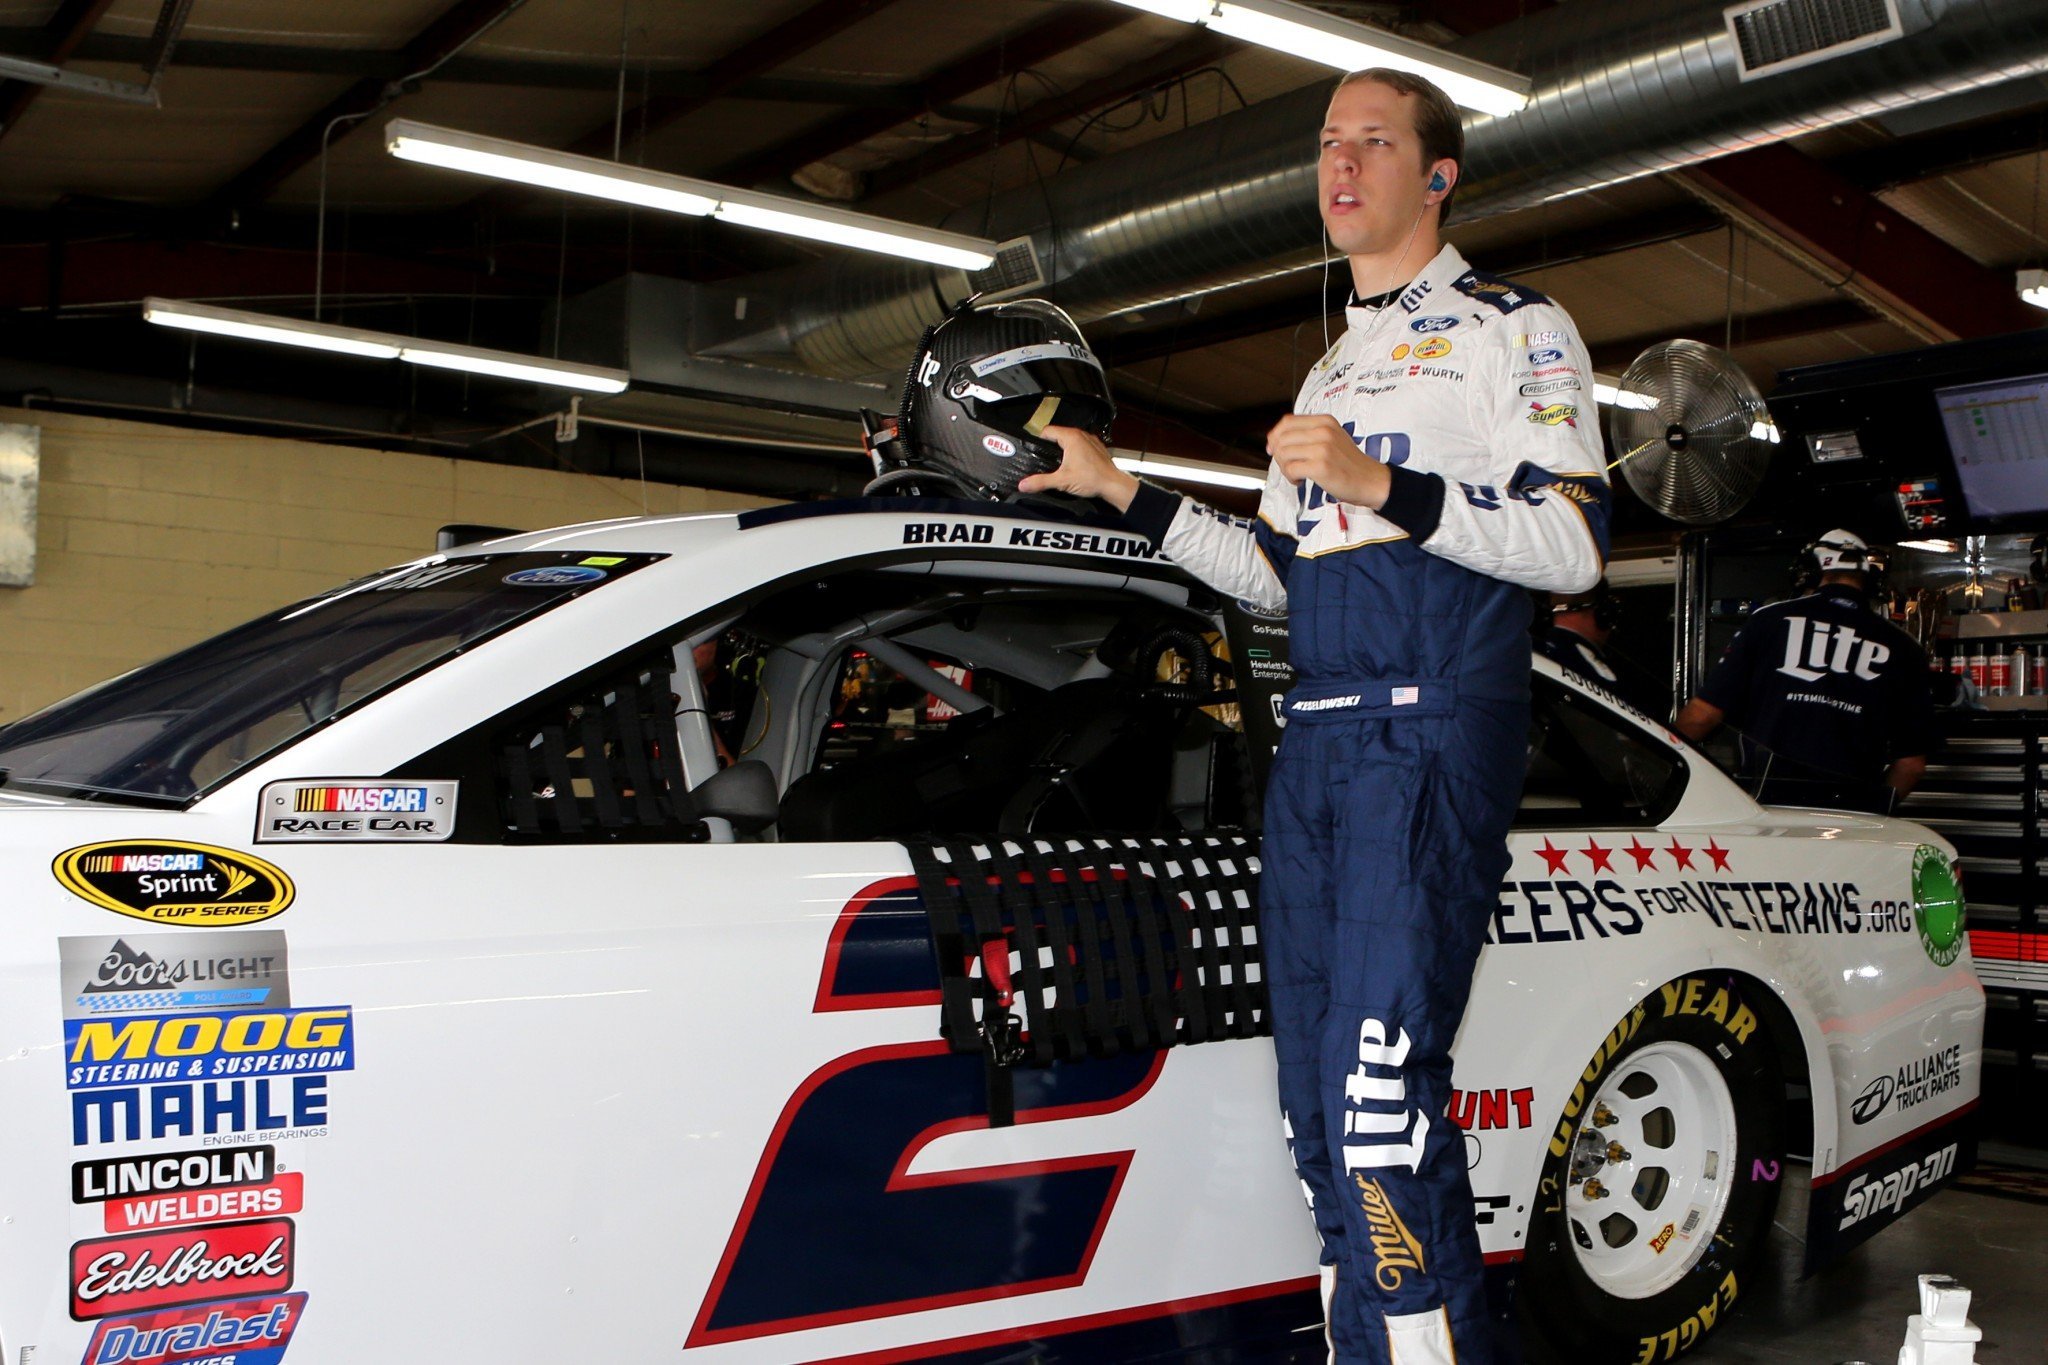 Brad Keselowski, Team Penske penalized after failing MI inspection